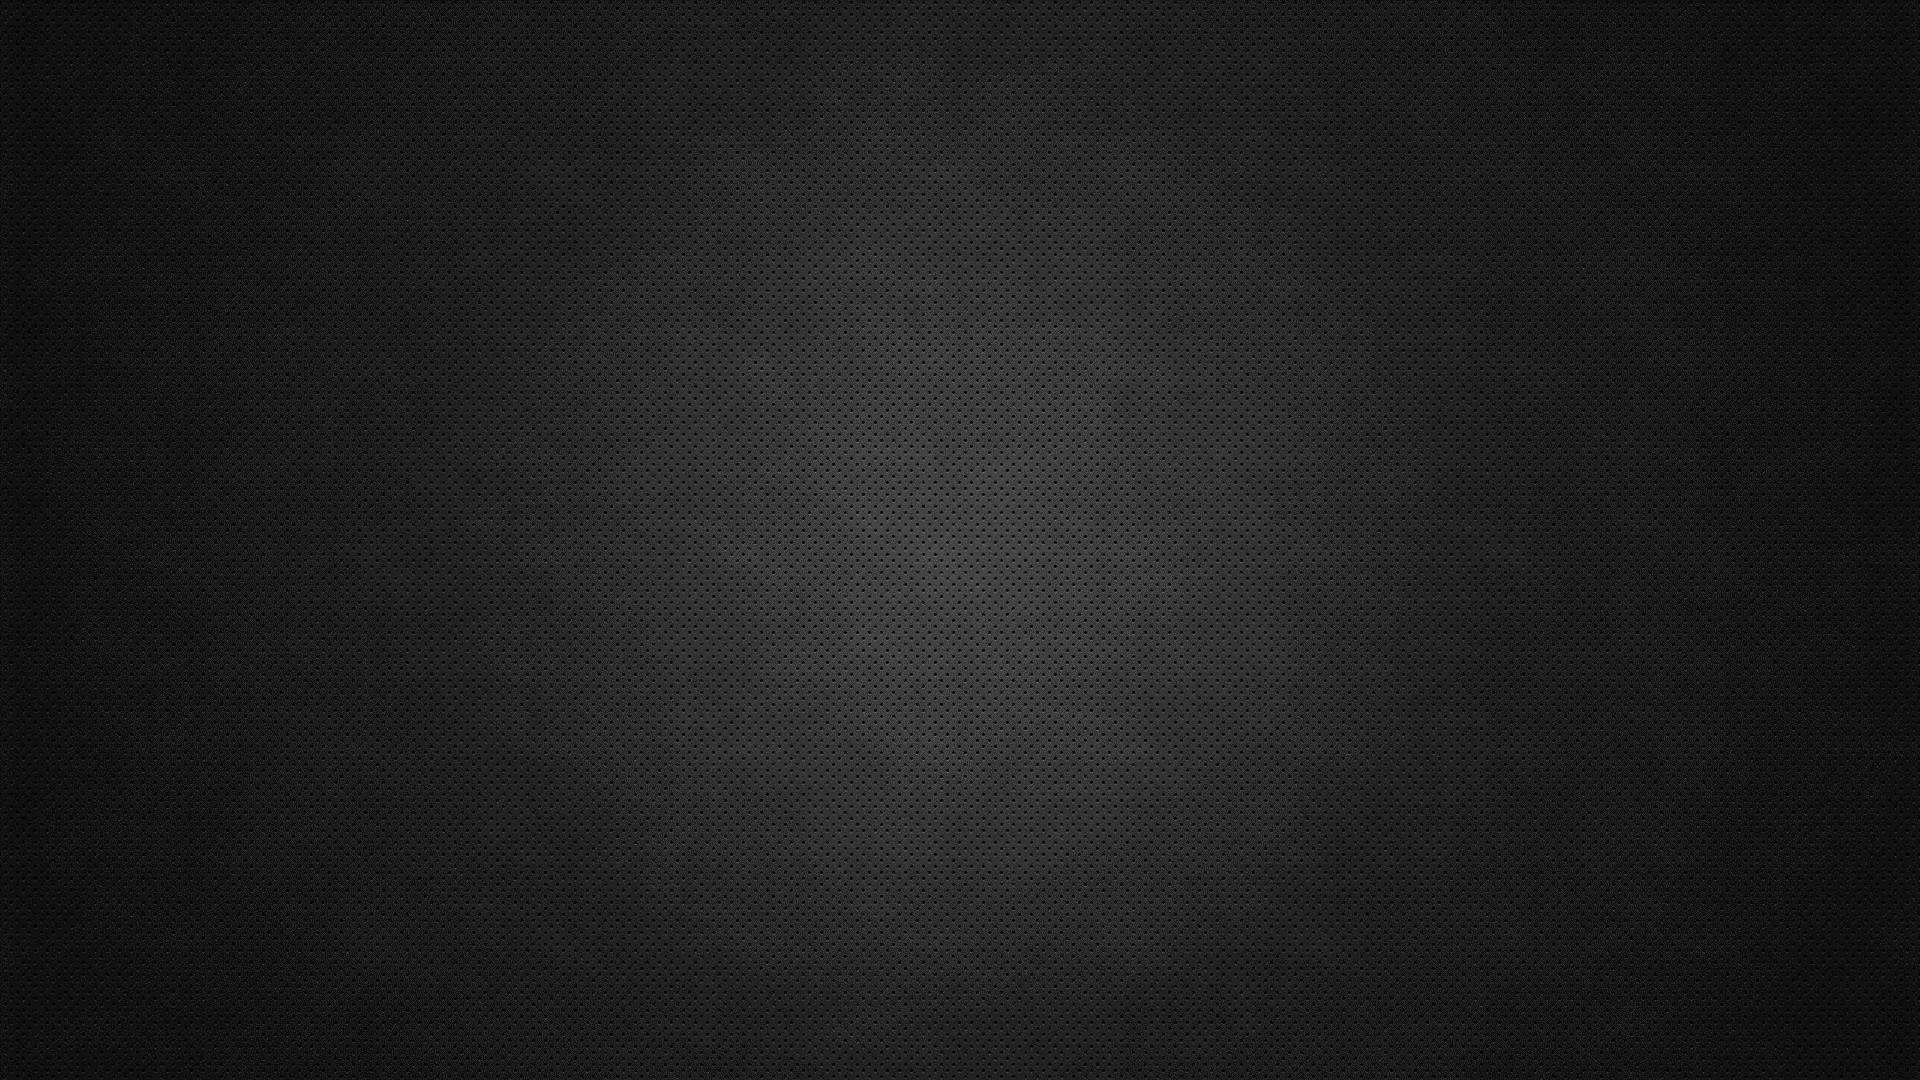 Black Hd Wallpaper 1920X1080 13 Desktop Background ...